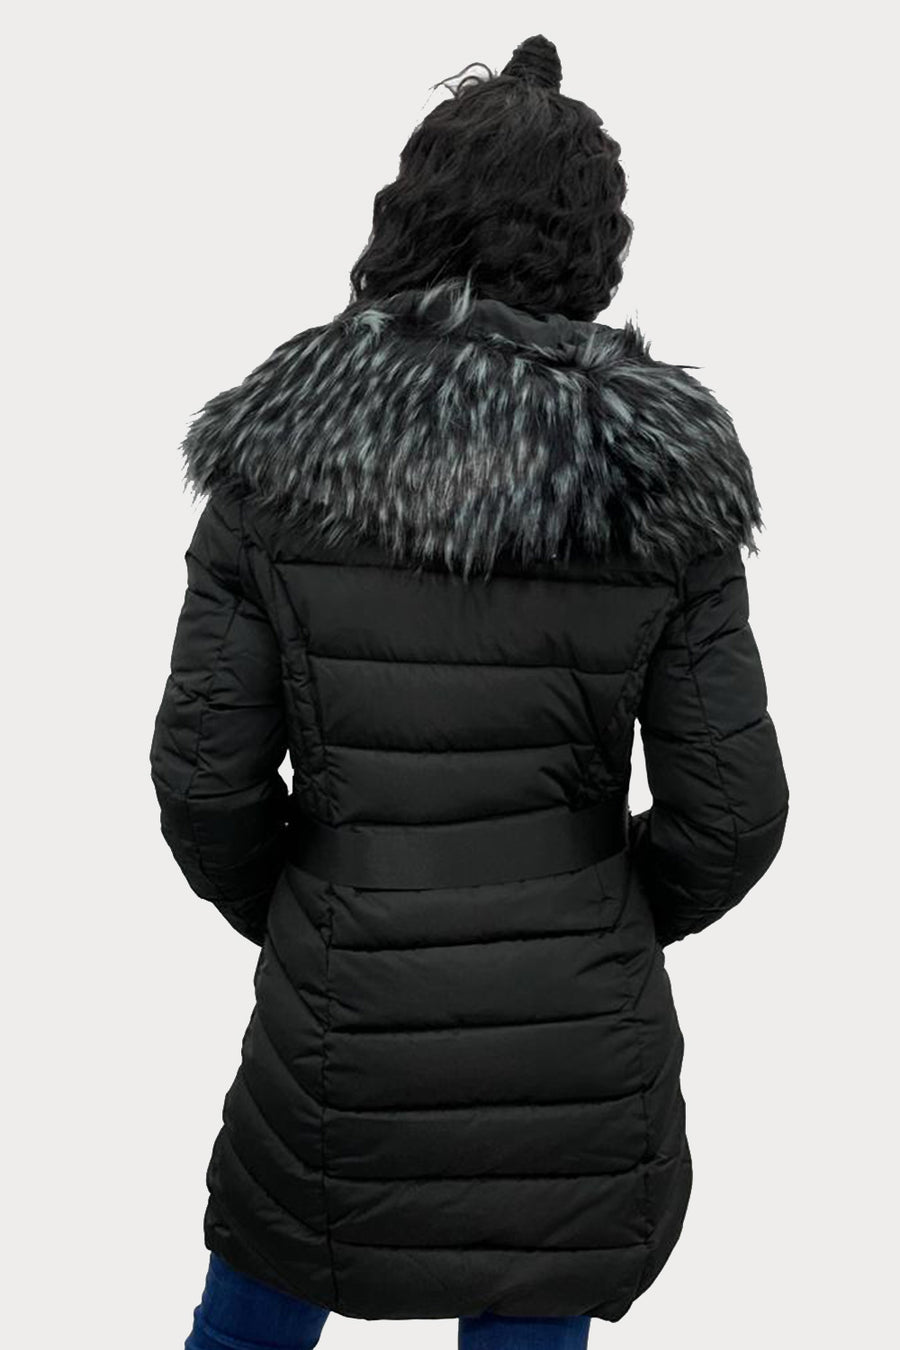 Black Faux Fur Hooded Long Puffer Jacket - Genesis